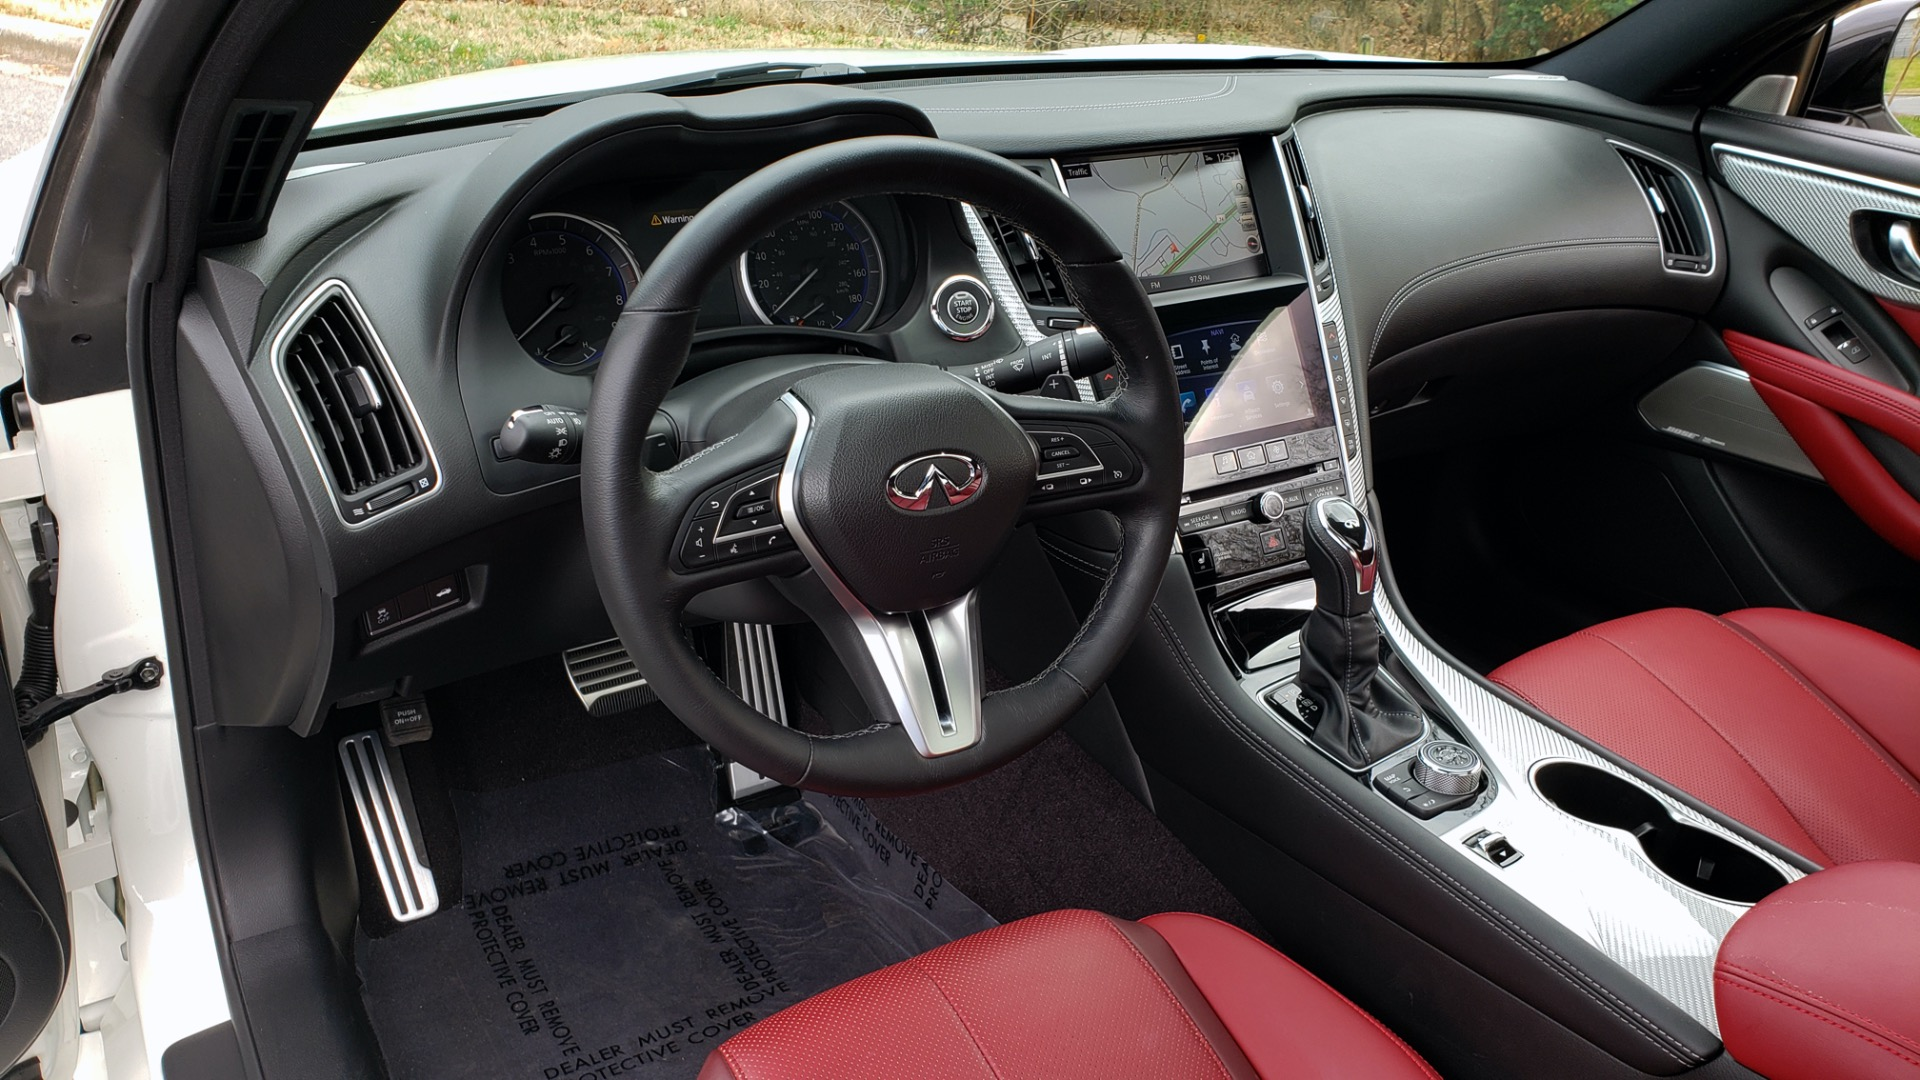 Used 2018 INFINITI Q60 RED SPORT 400 / SENSORY PKG / SUNROOF / NAV / REARVIEW for sale Sold at Formula Imports in Charlotte NC 28227 40